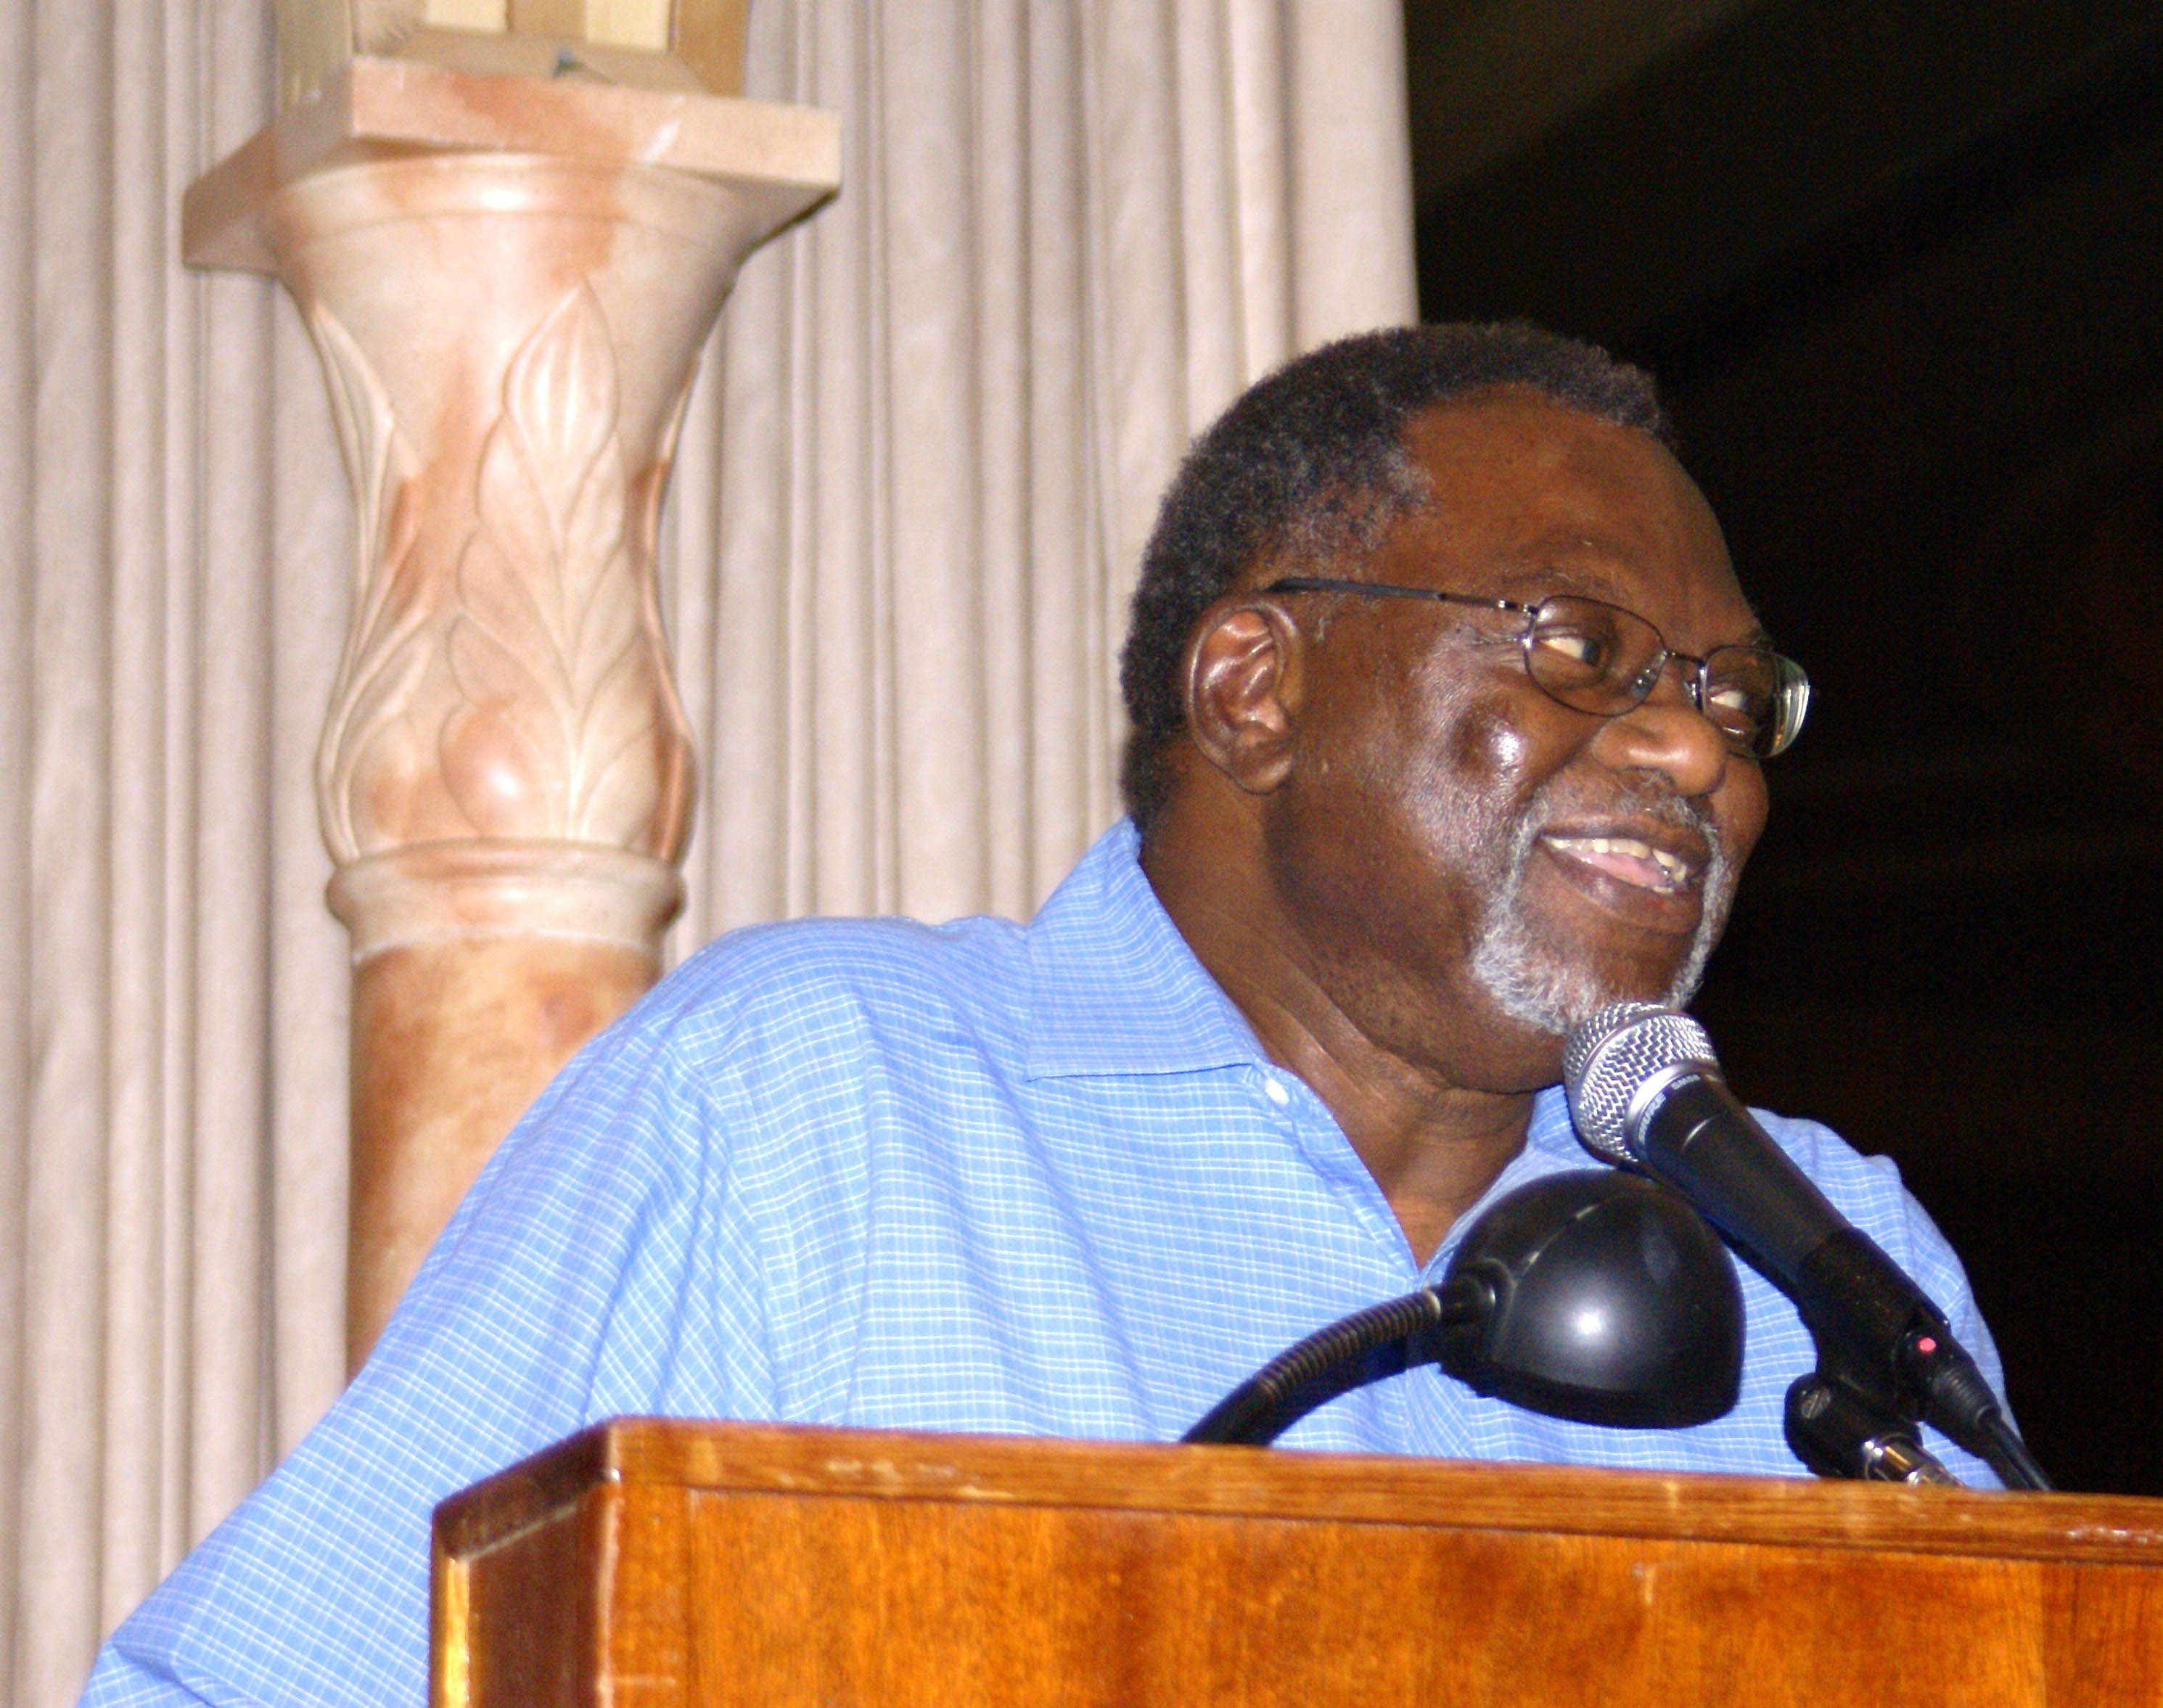 Nelroy Jackson received the Jake Sigg Award for Vision and Service at the 2007 Symposium in San Diego. Photo: Bob Case